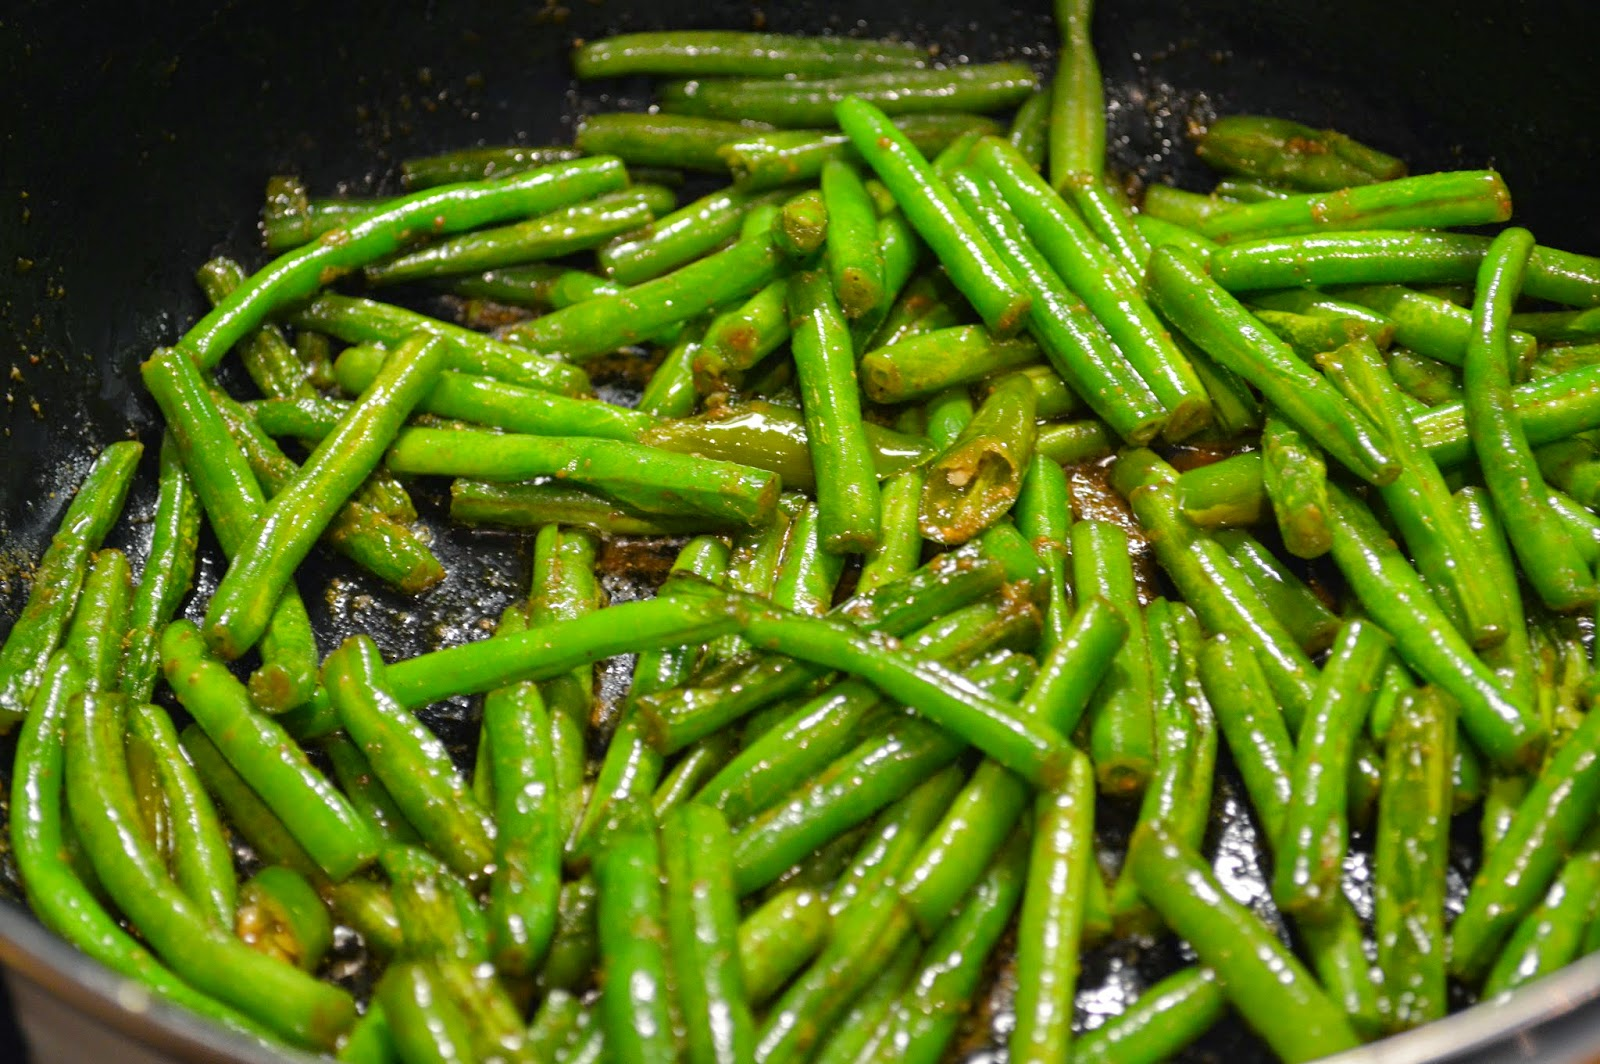 Cook green beans to remove the rawness yet firm to bite